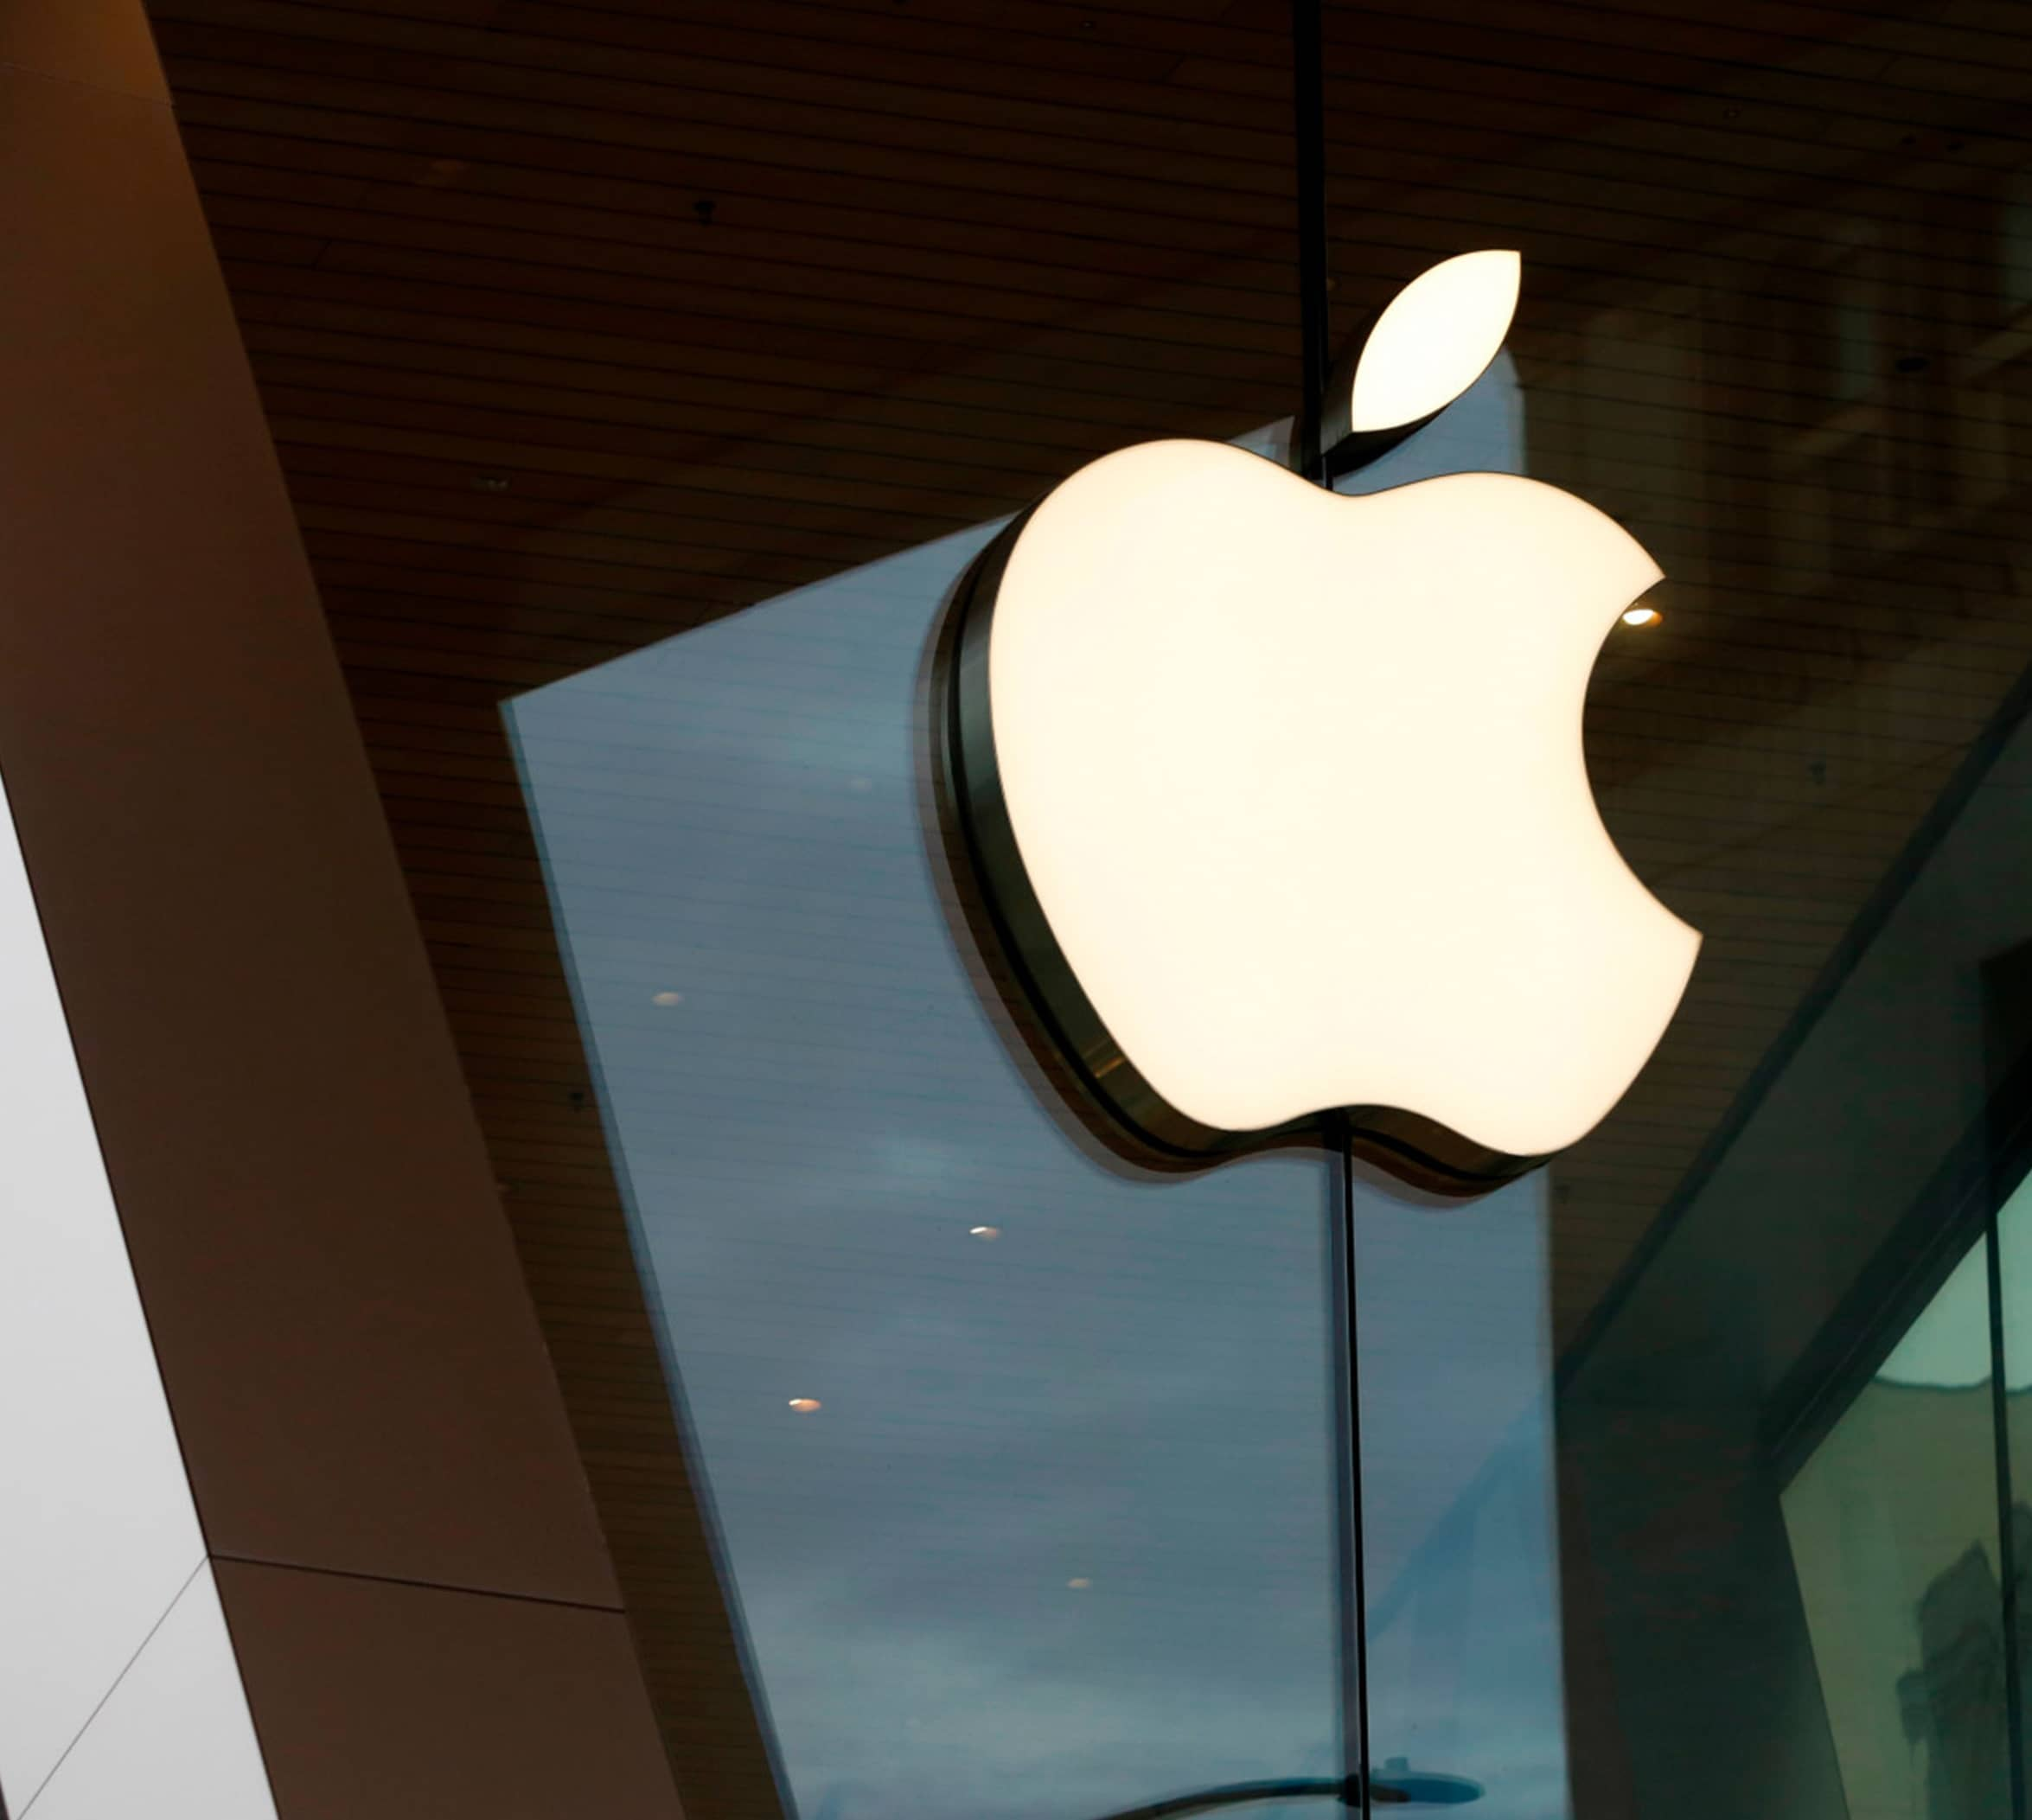 FRANCE FINES APPLE $1.2 BILLION FOR ANTI-COMPETITIVE ACTS